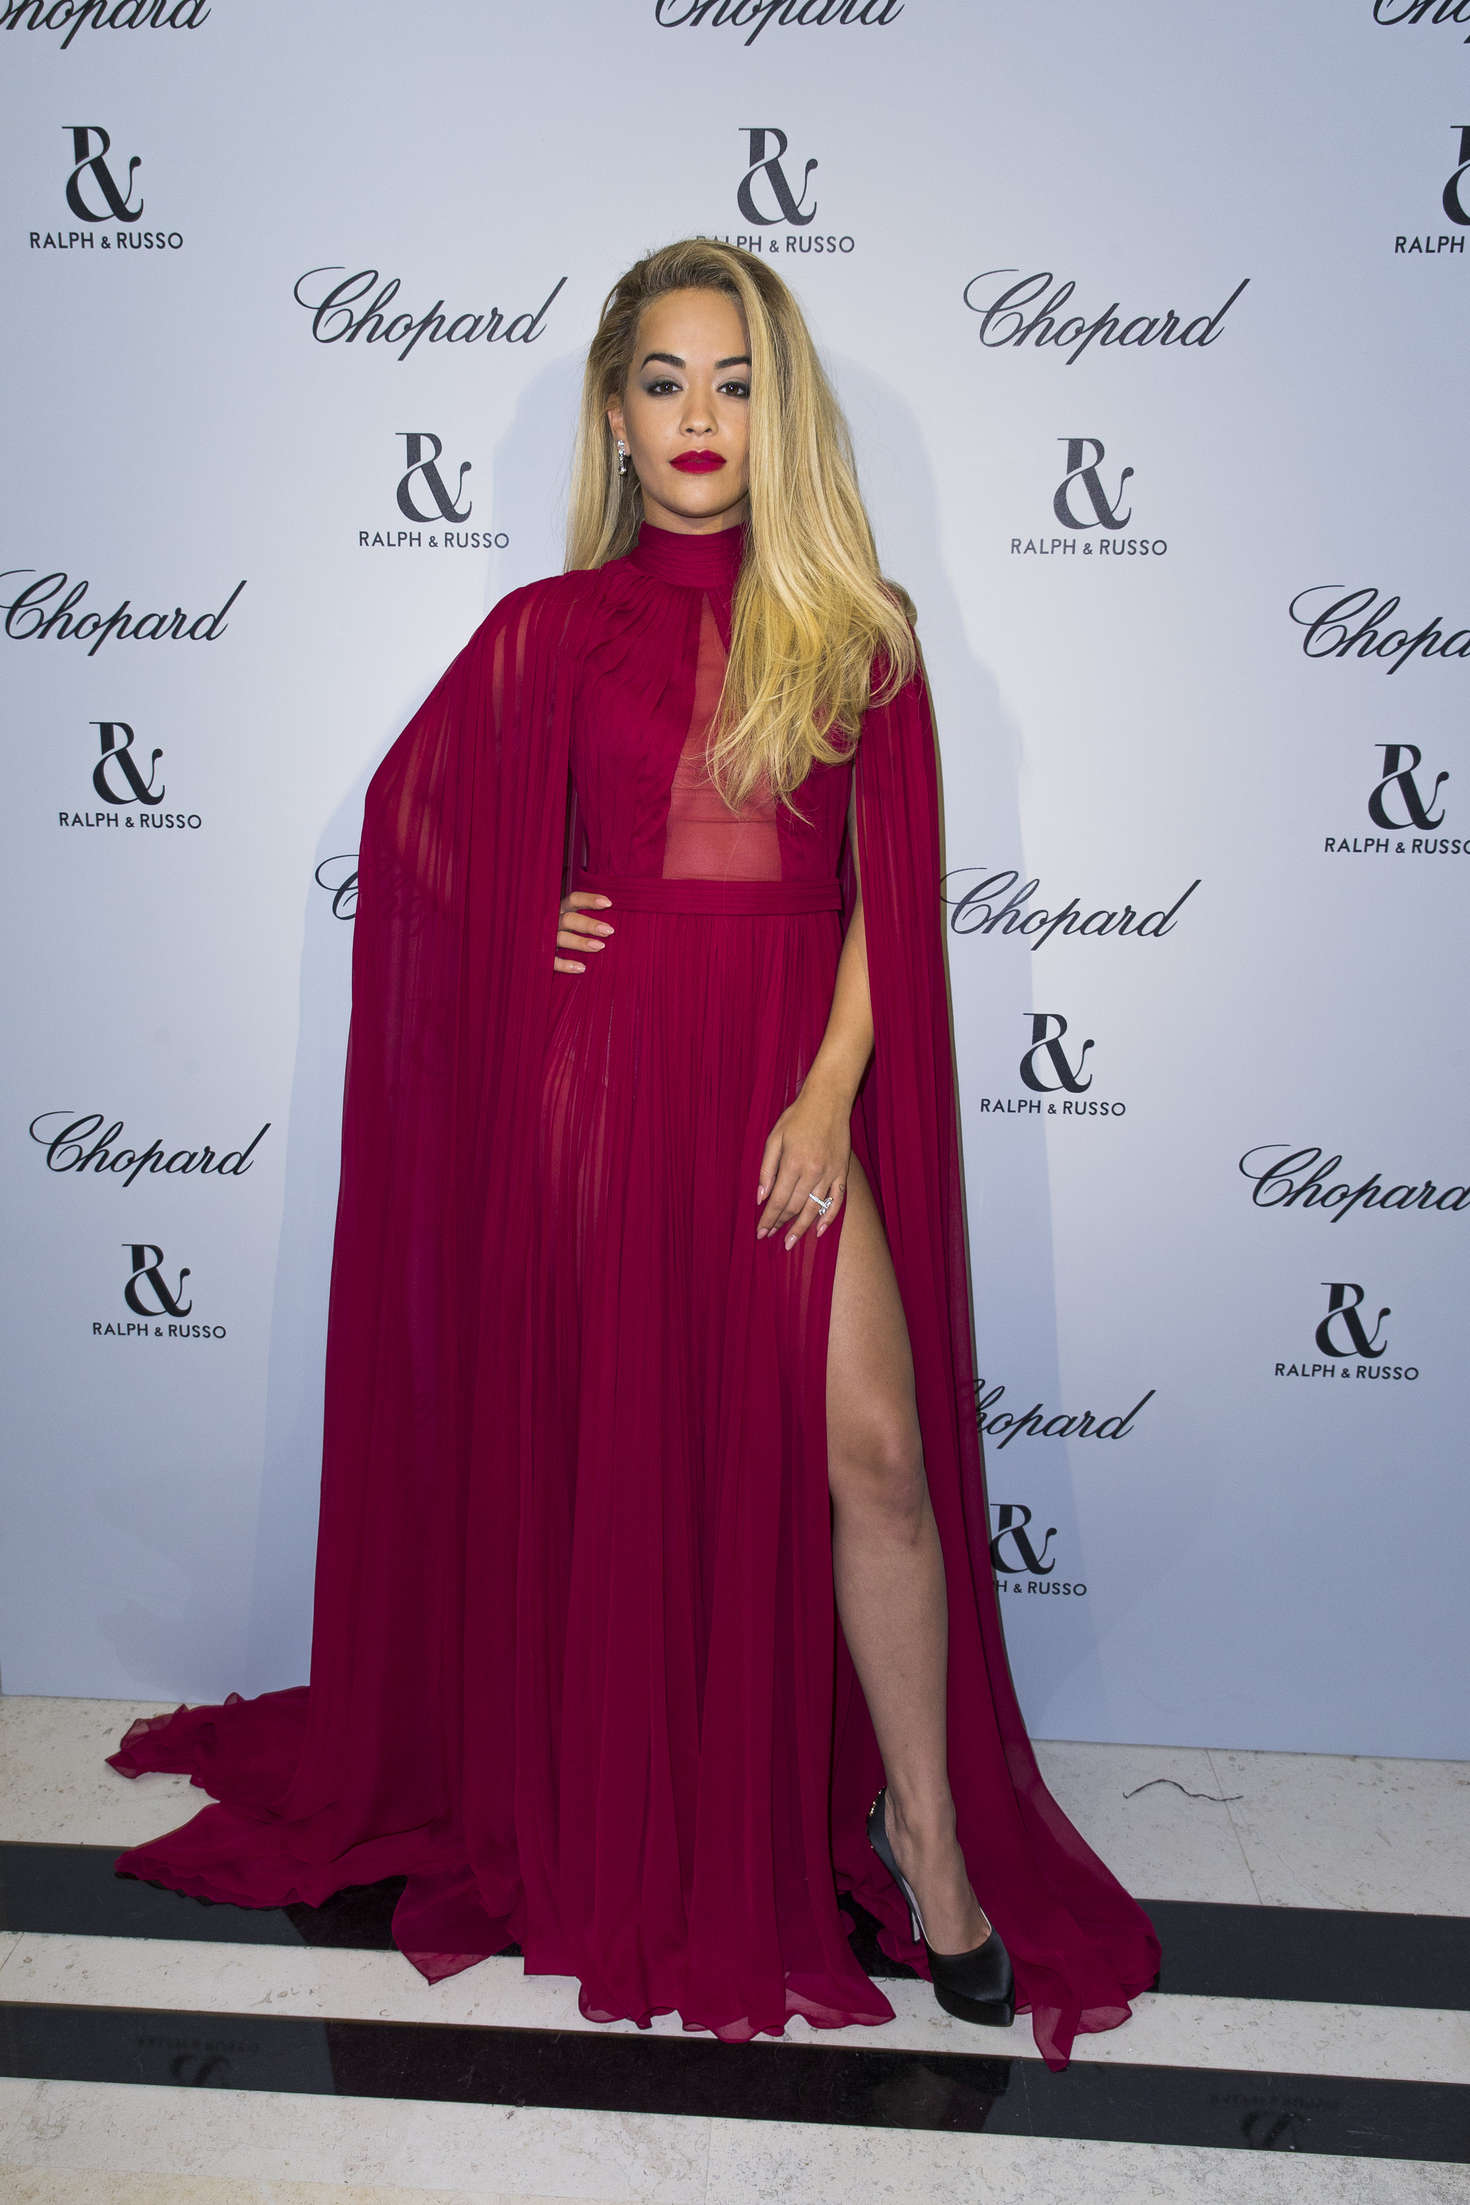 free rita ora in short dress out in london with rita russo